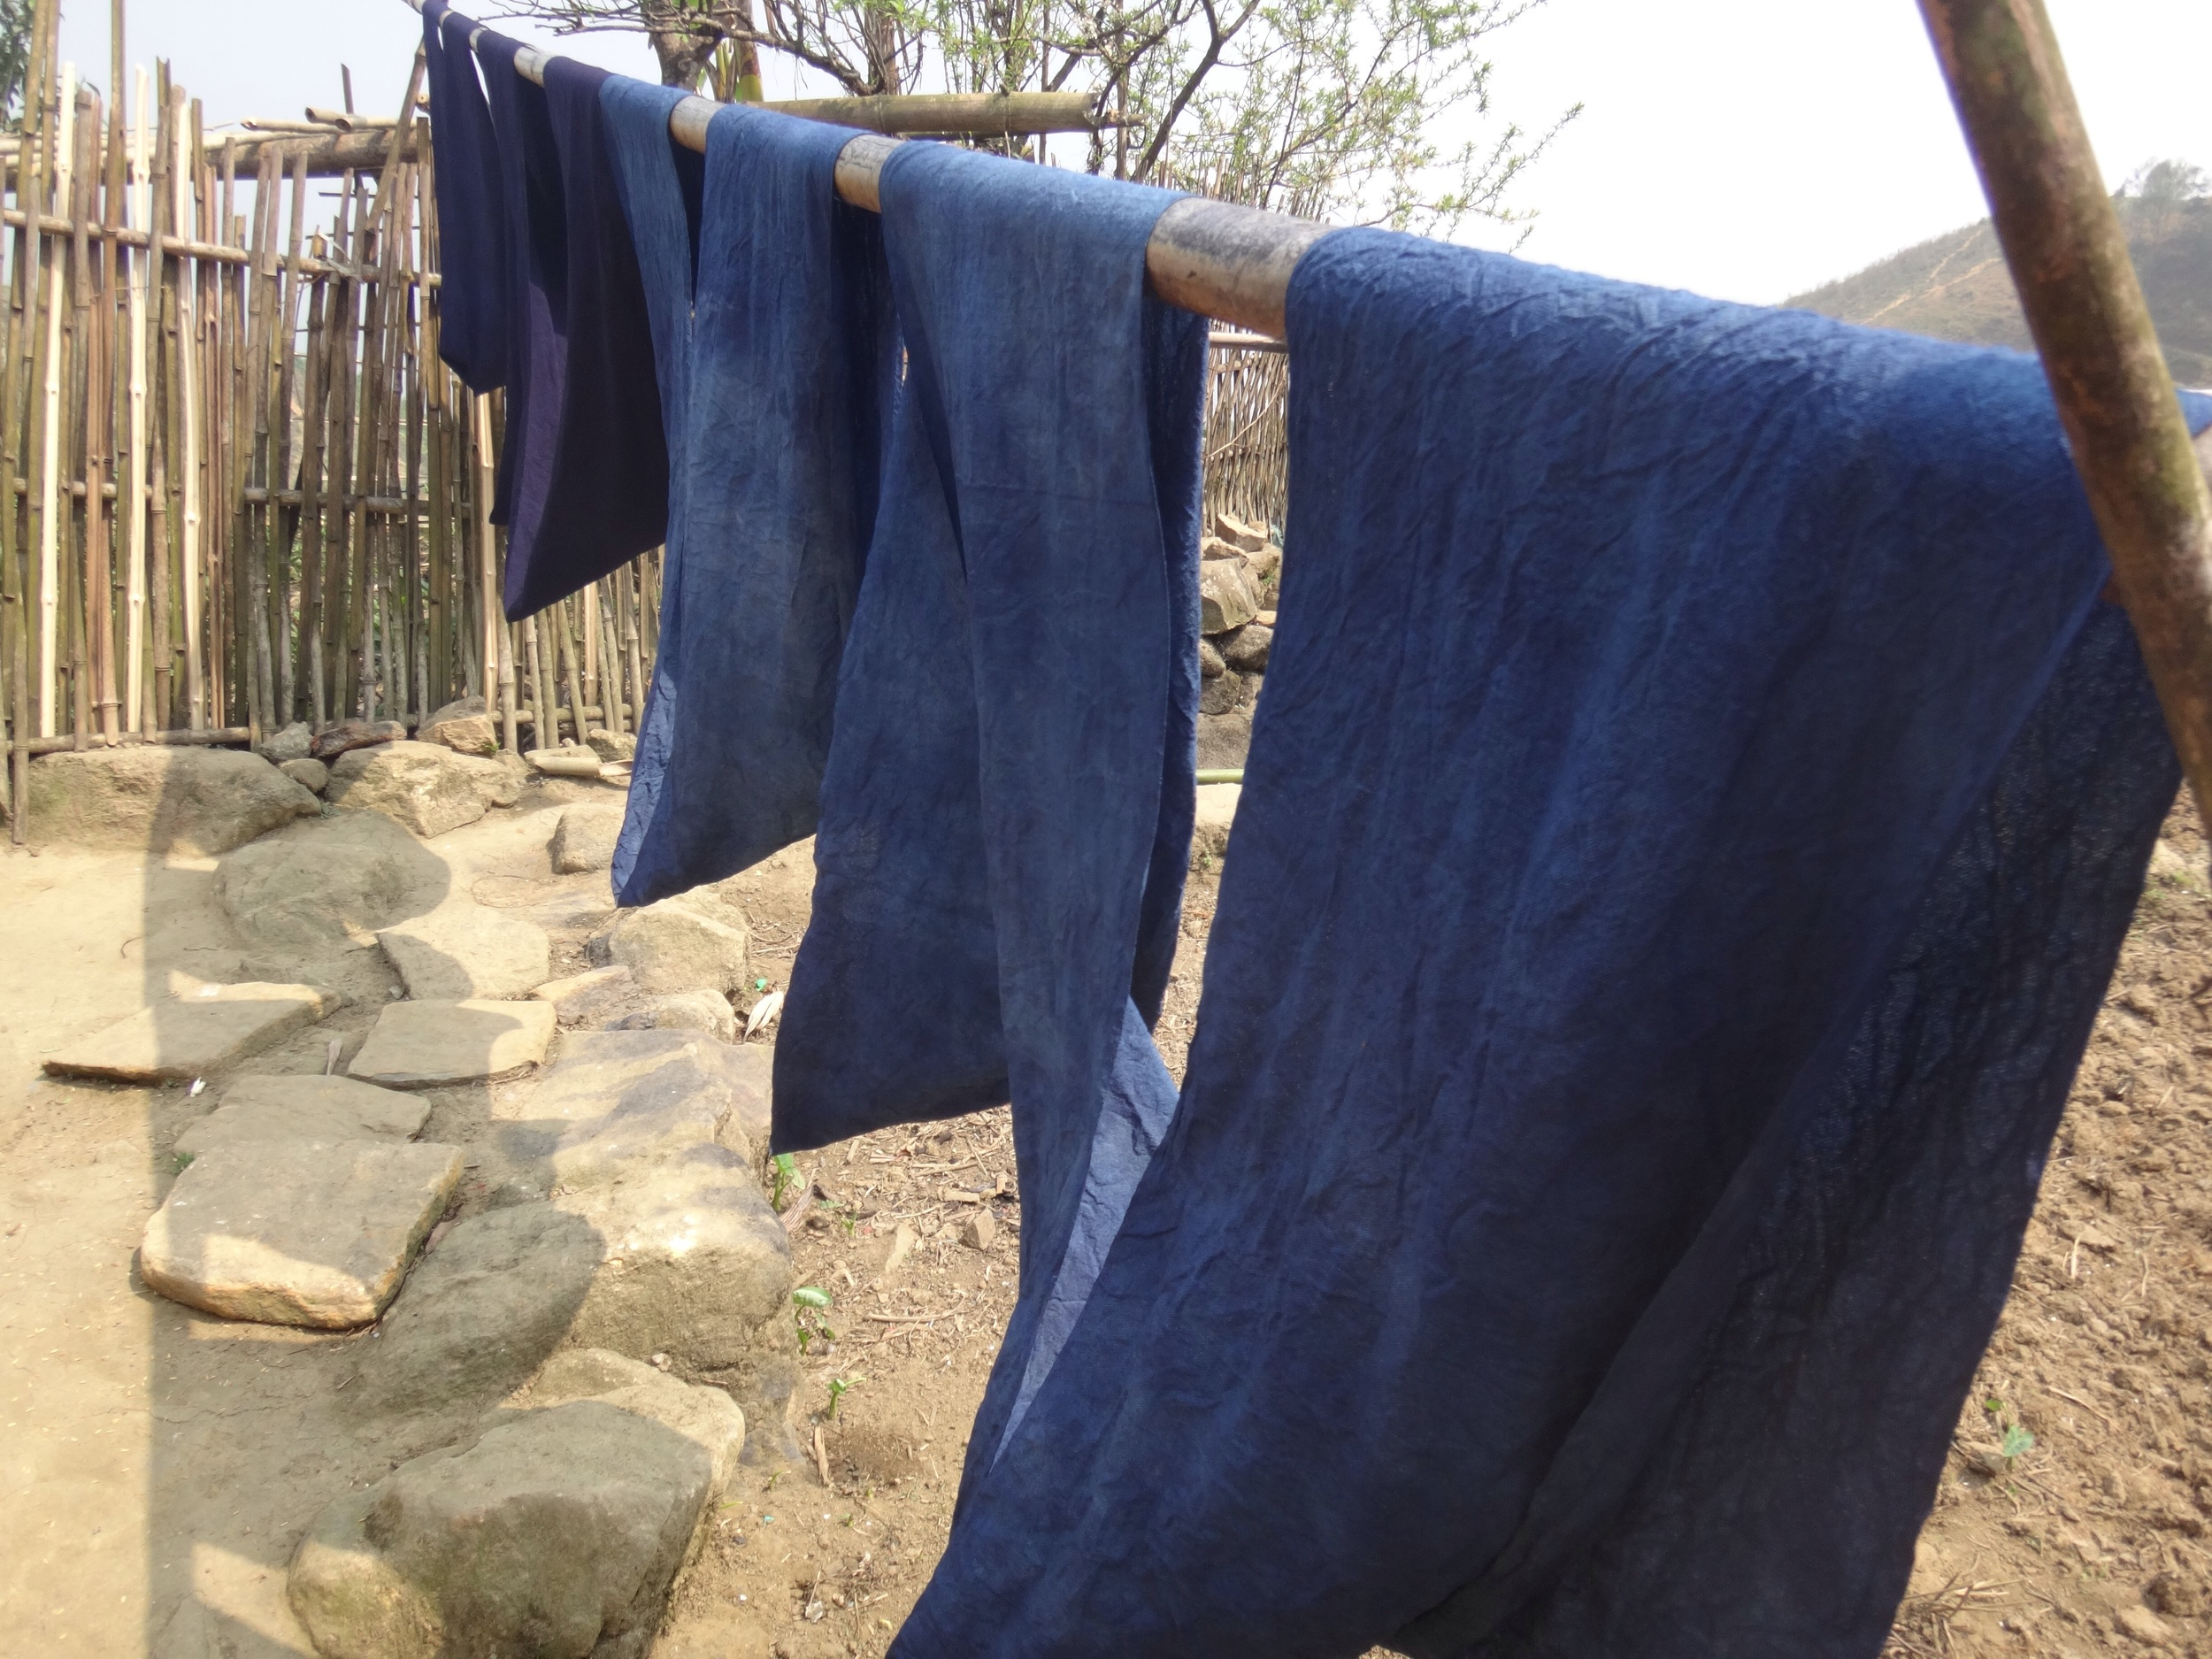 Dyed cloth drying.